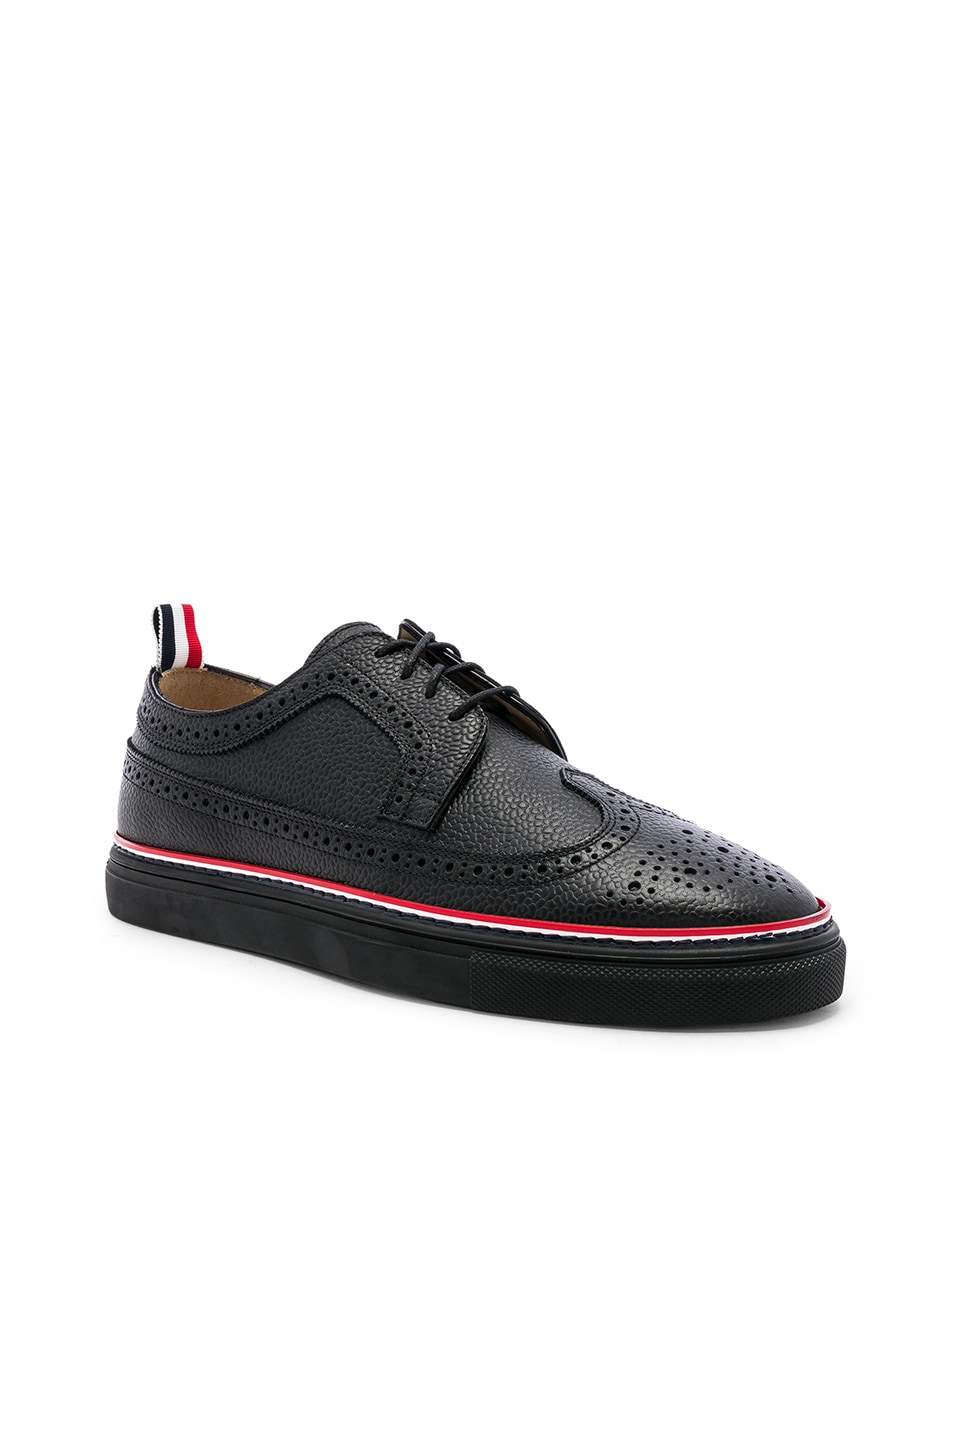 Image 1 of Thom Browne Brogue Sneaker in Black